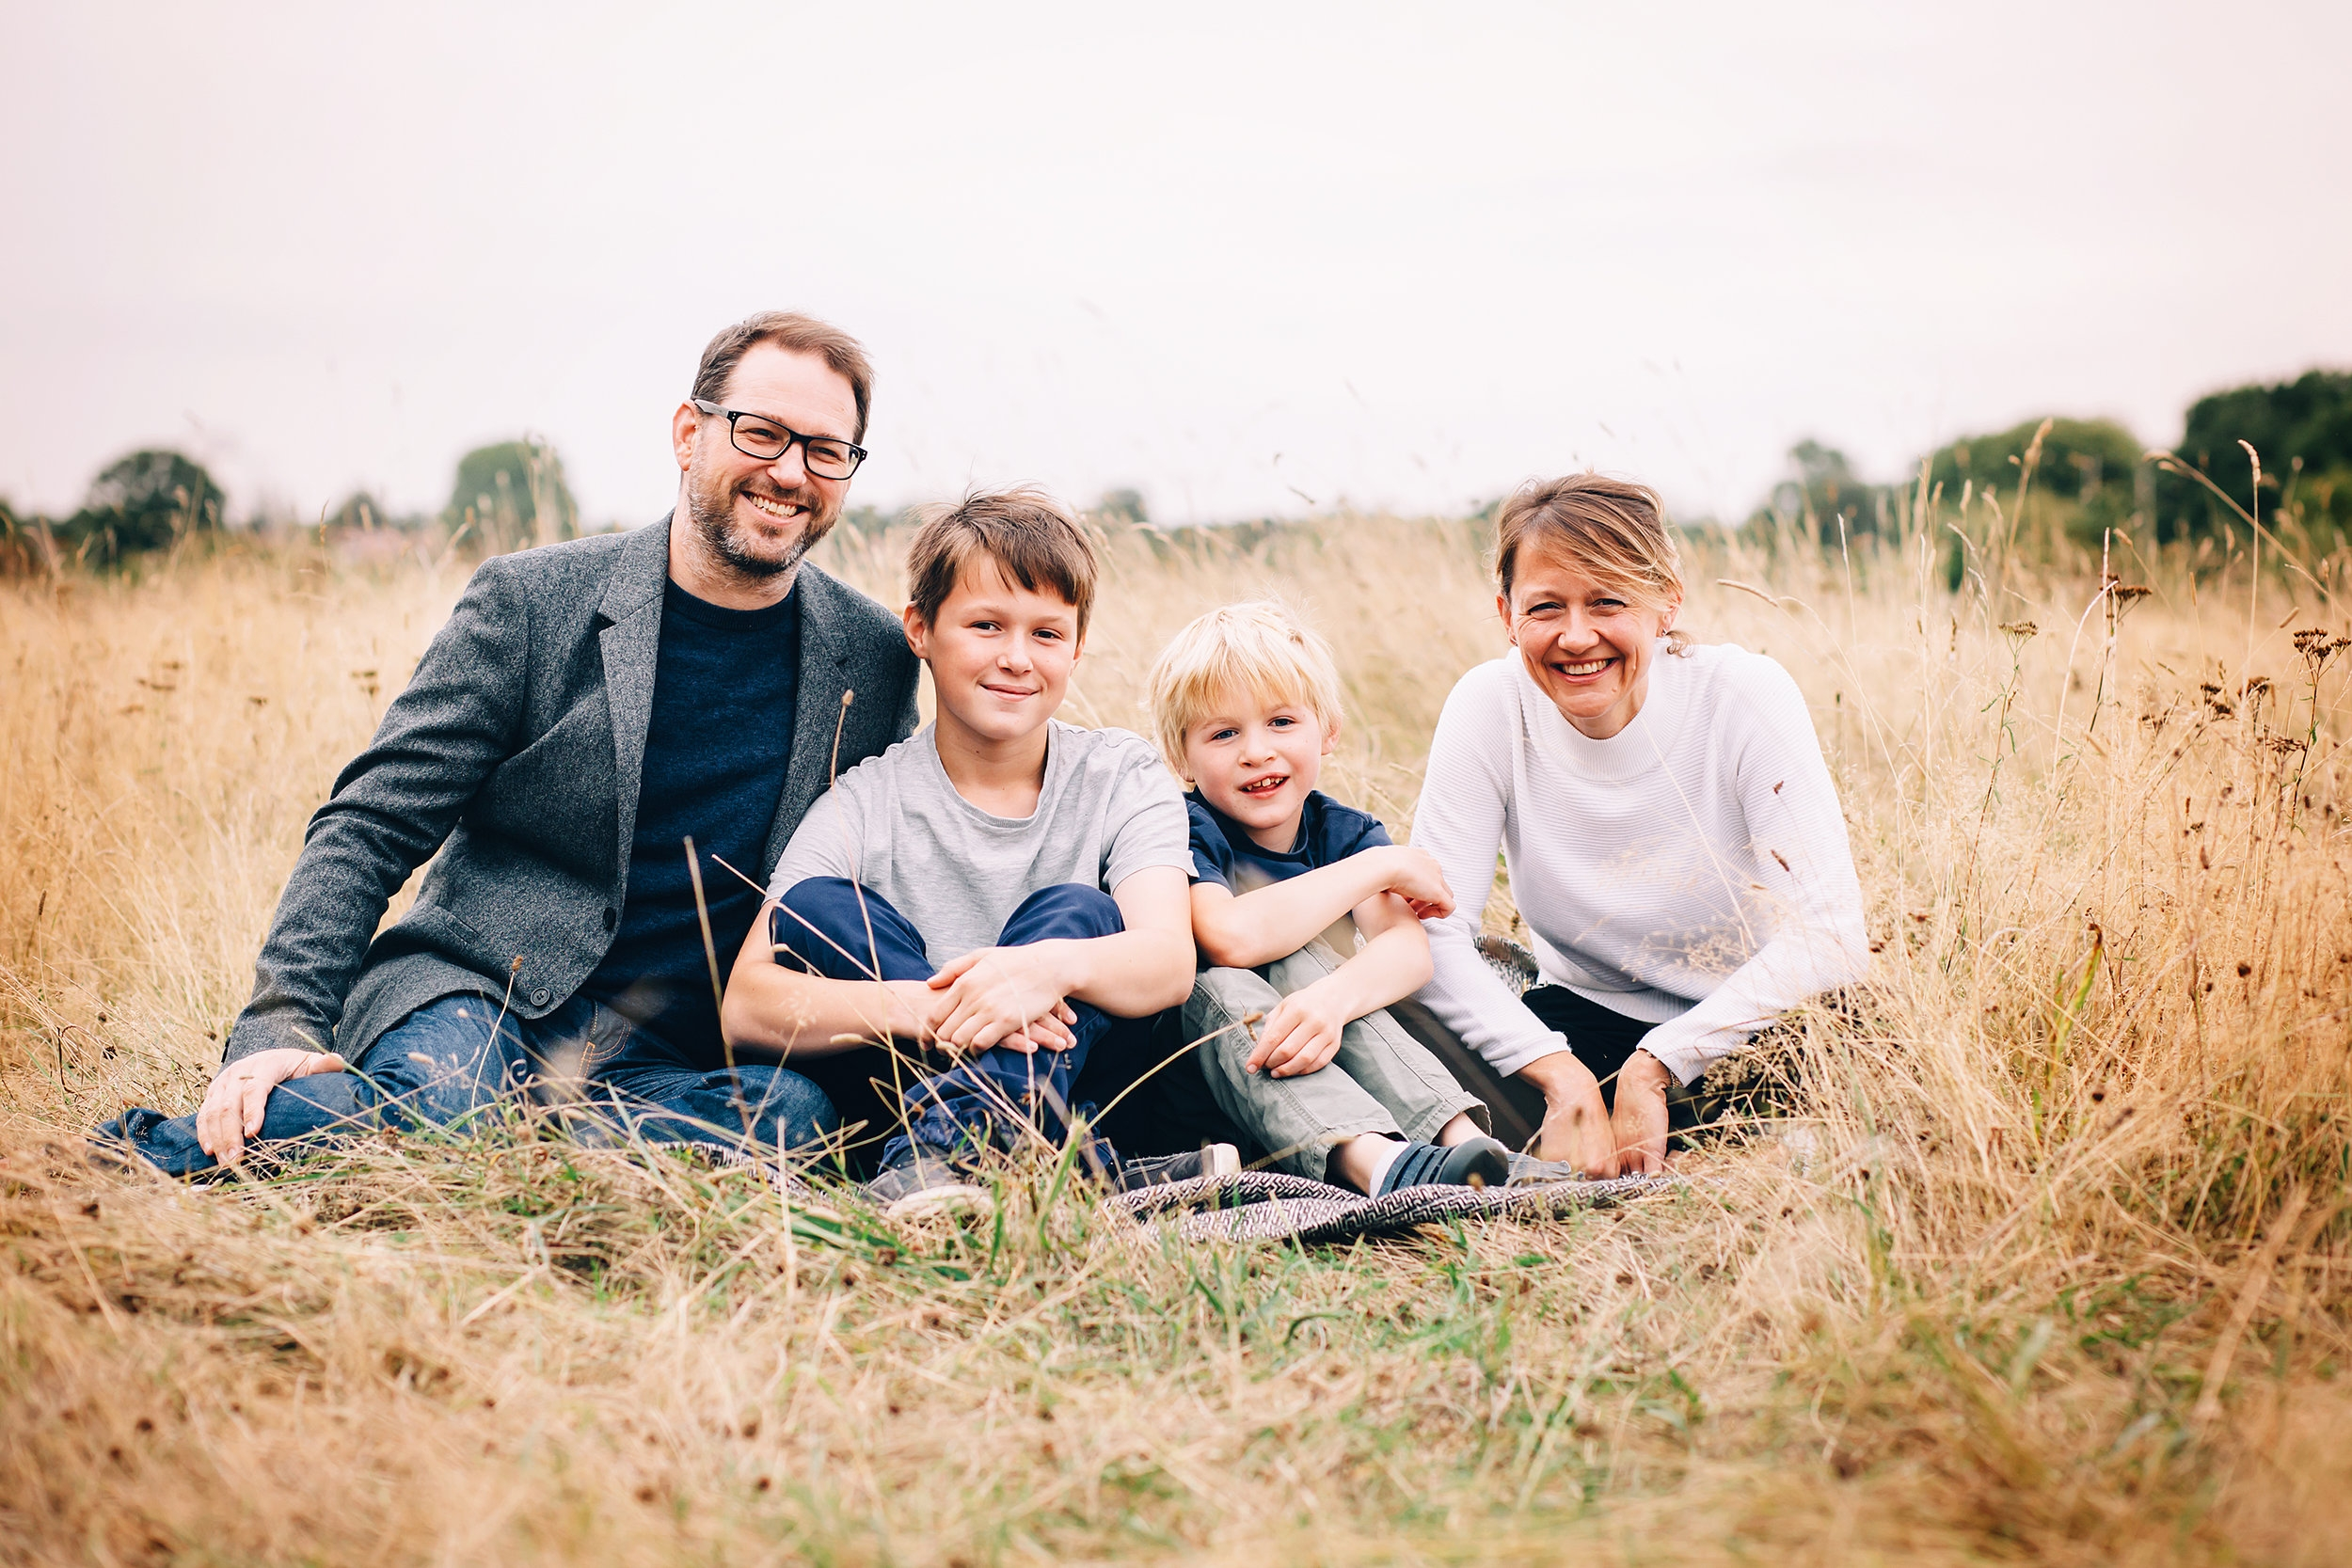 wanstead_family photo session